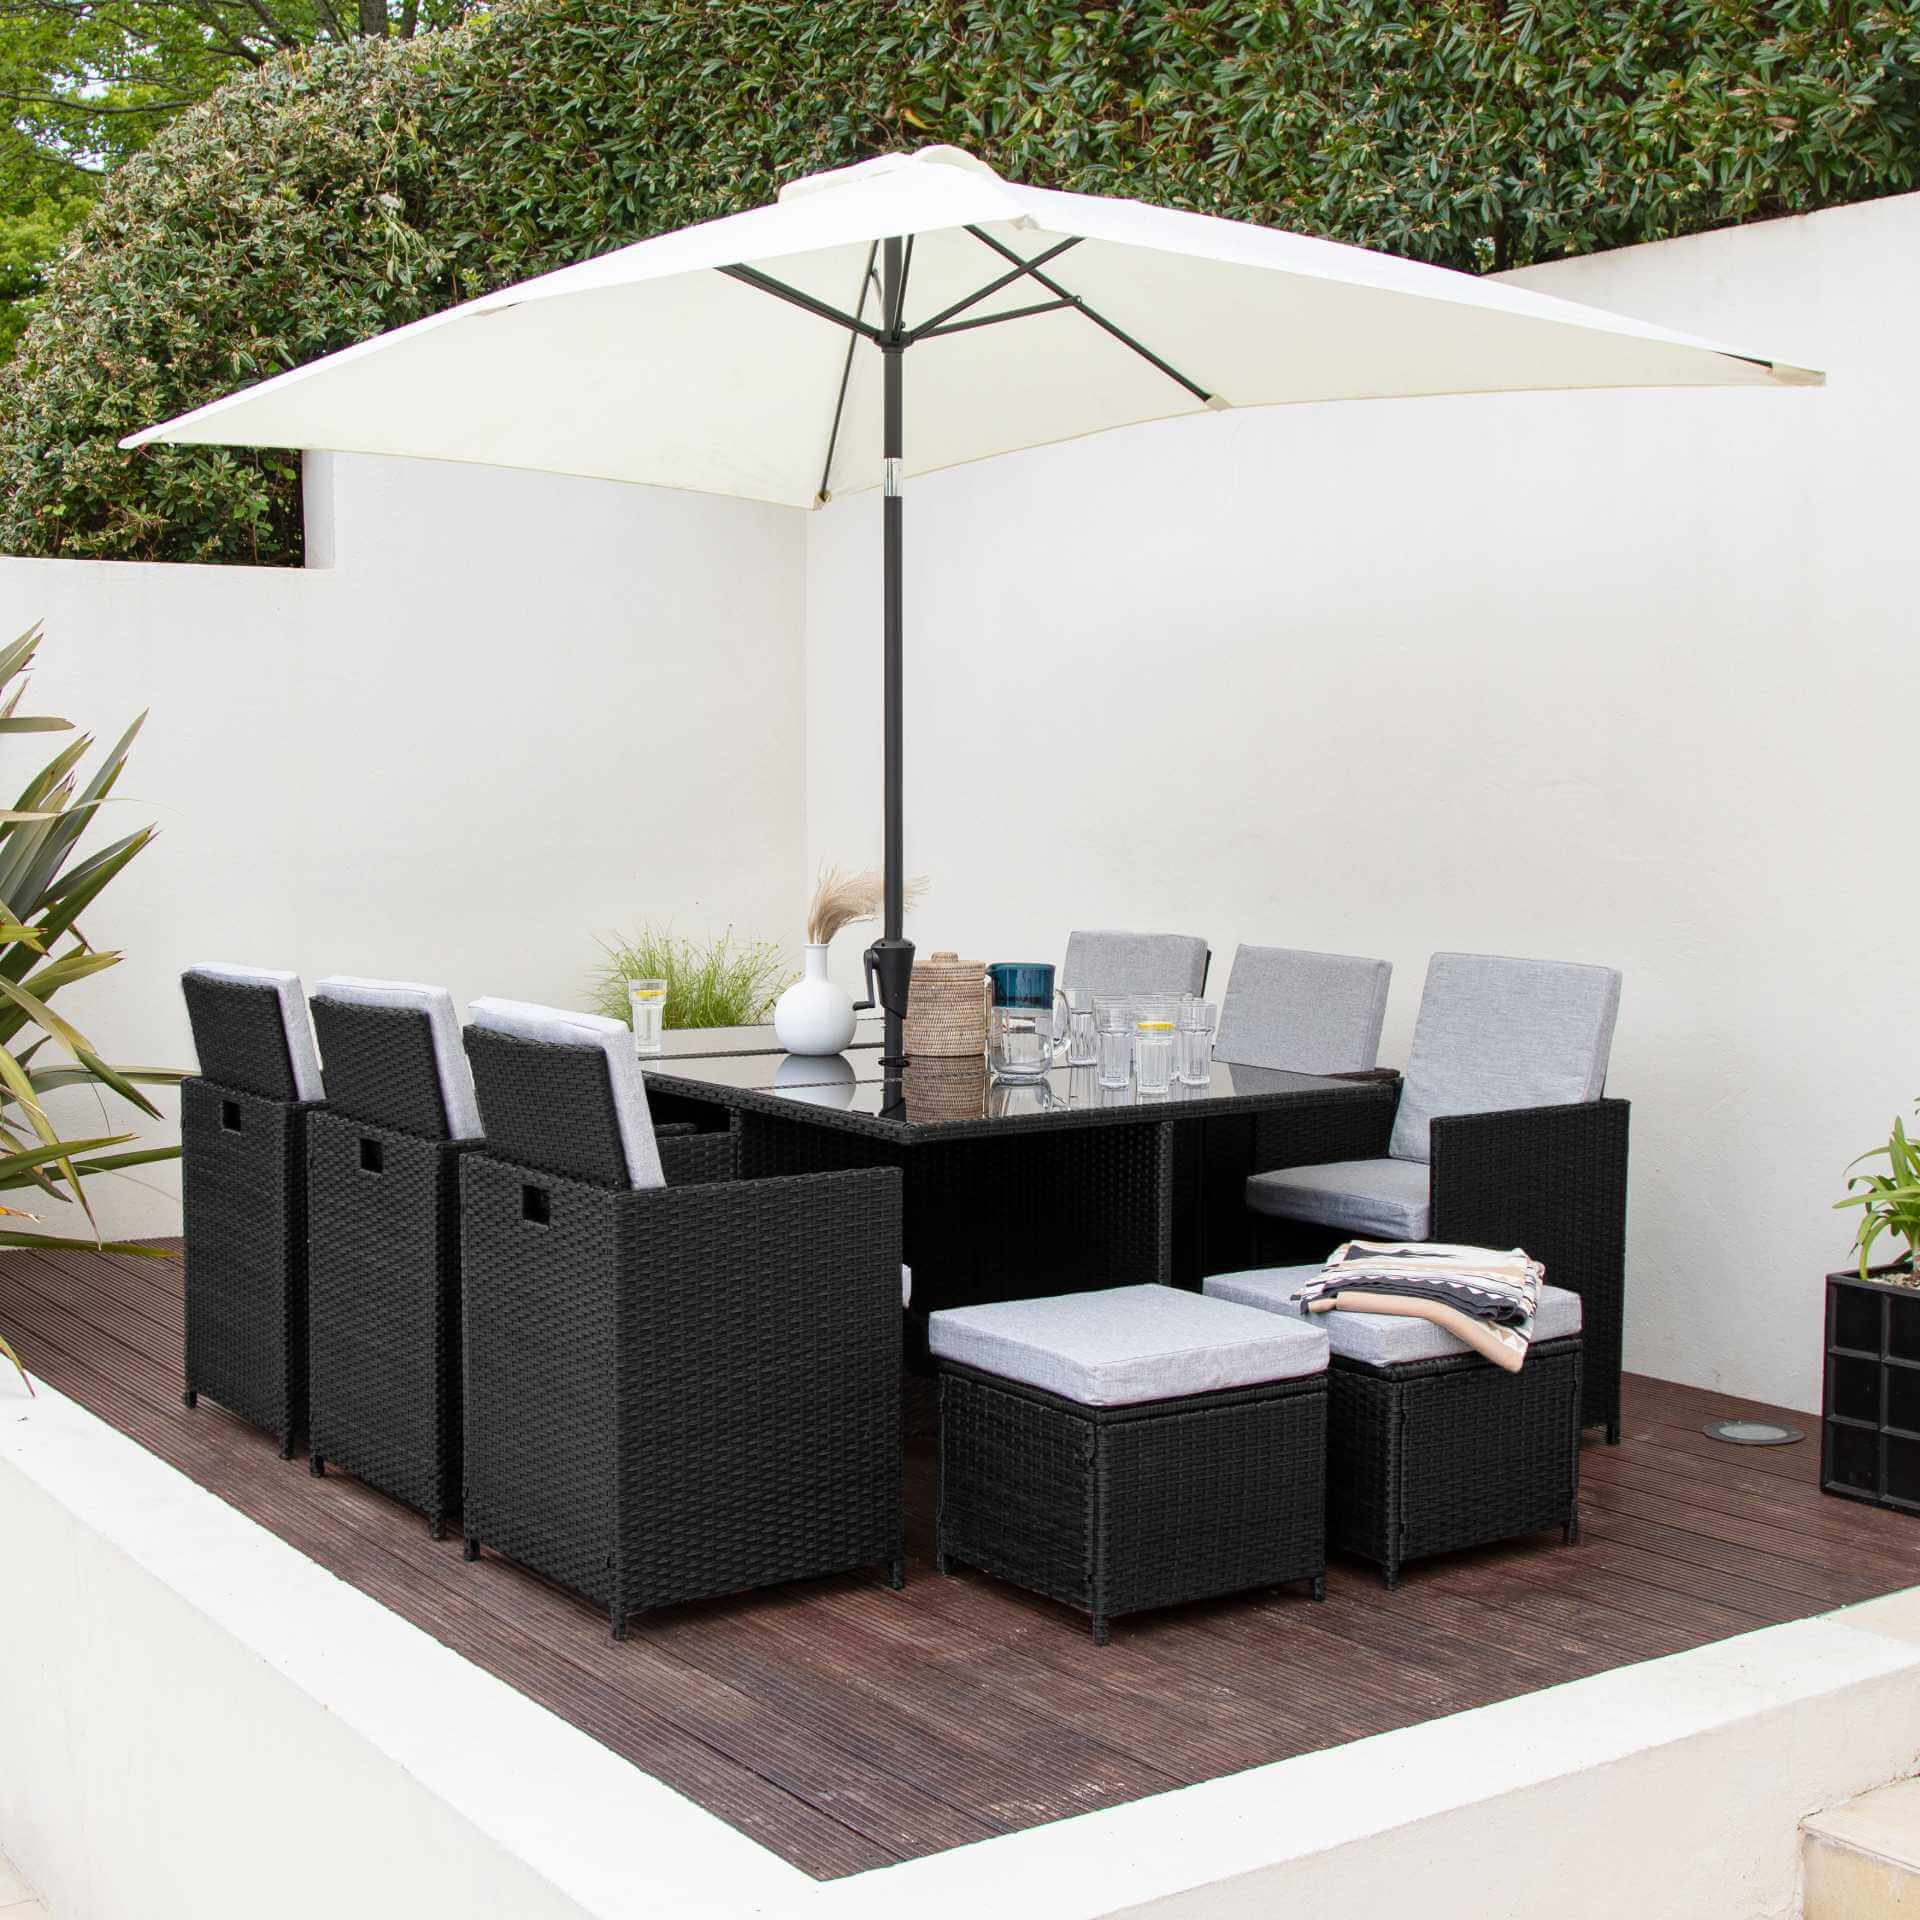 10 Seater Rattan Cube Outdoor Dining Set with Parasol - Black Weave